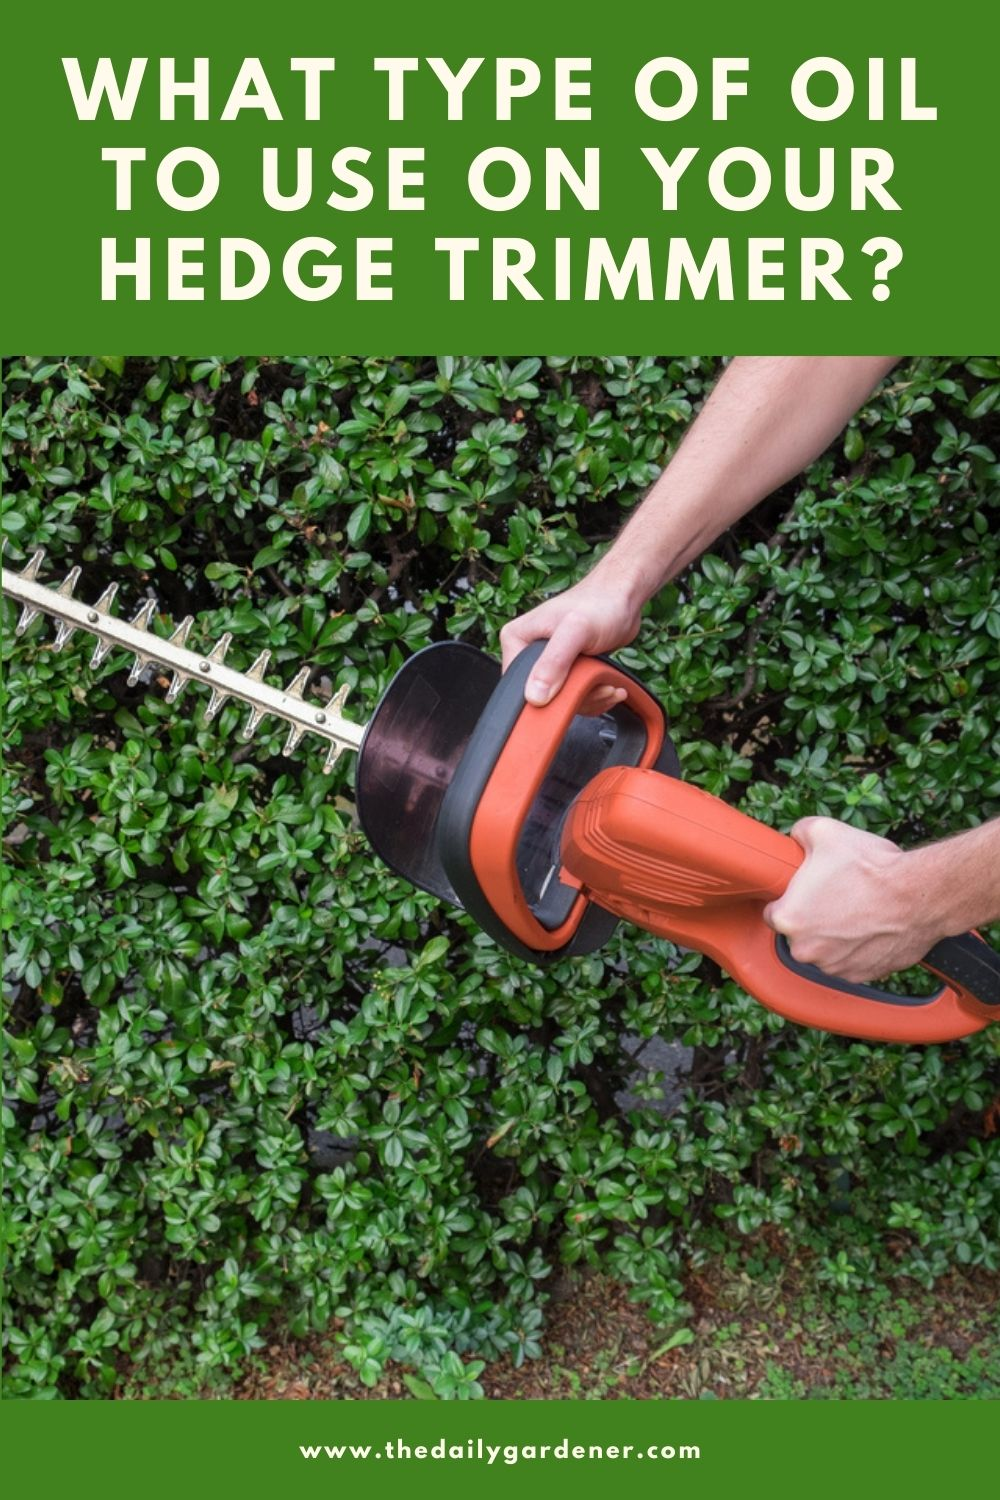 What Type of Oil to Use on Your Hedge Trimmer 2